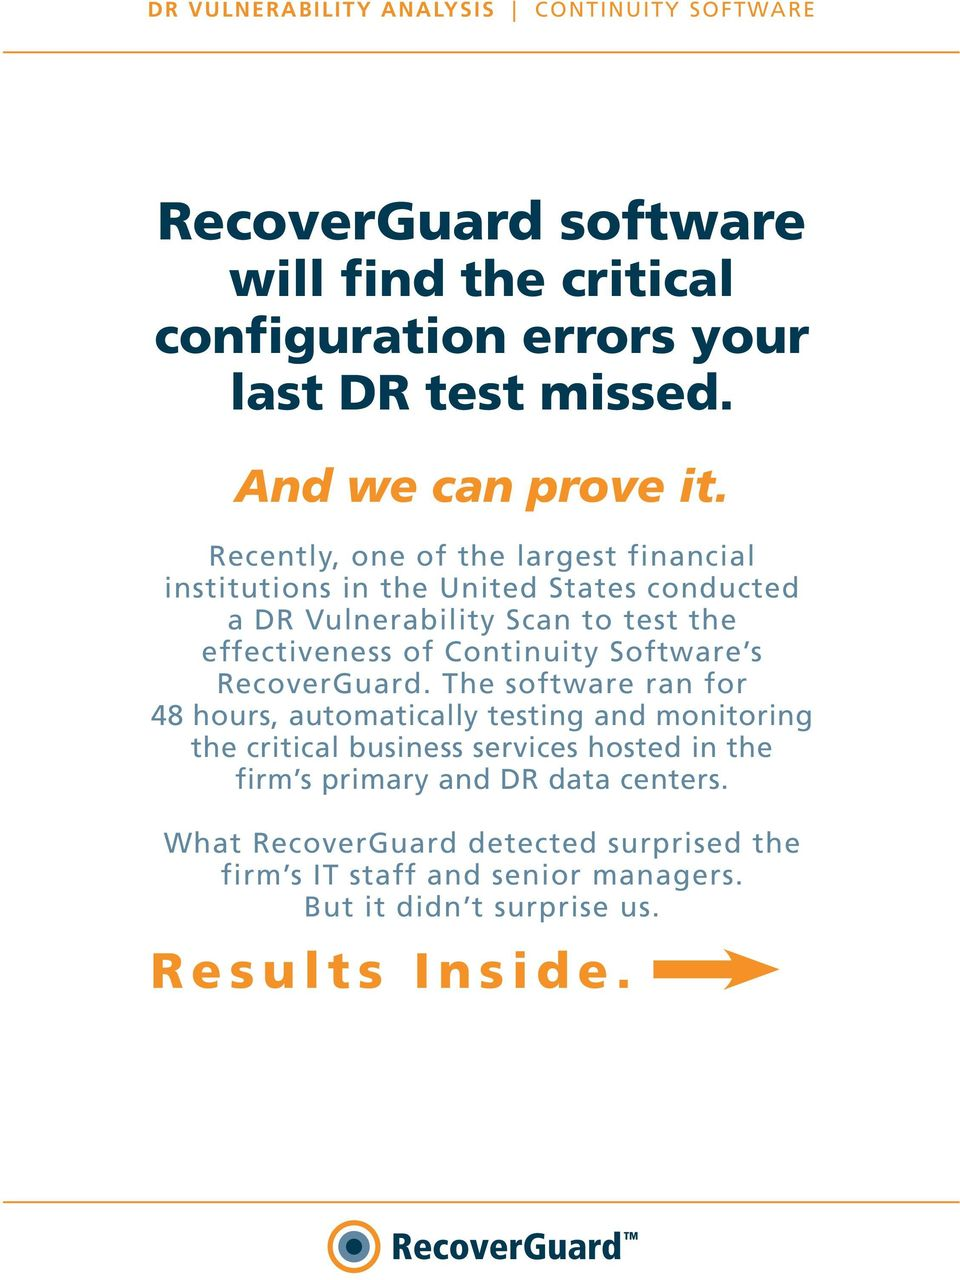 Recently, one of the largest financial institutions in the United States conducted a DR Vulnerability Scan to test the effectiveness of Continuity Software s